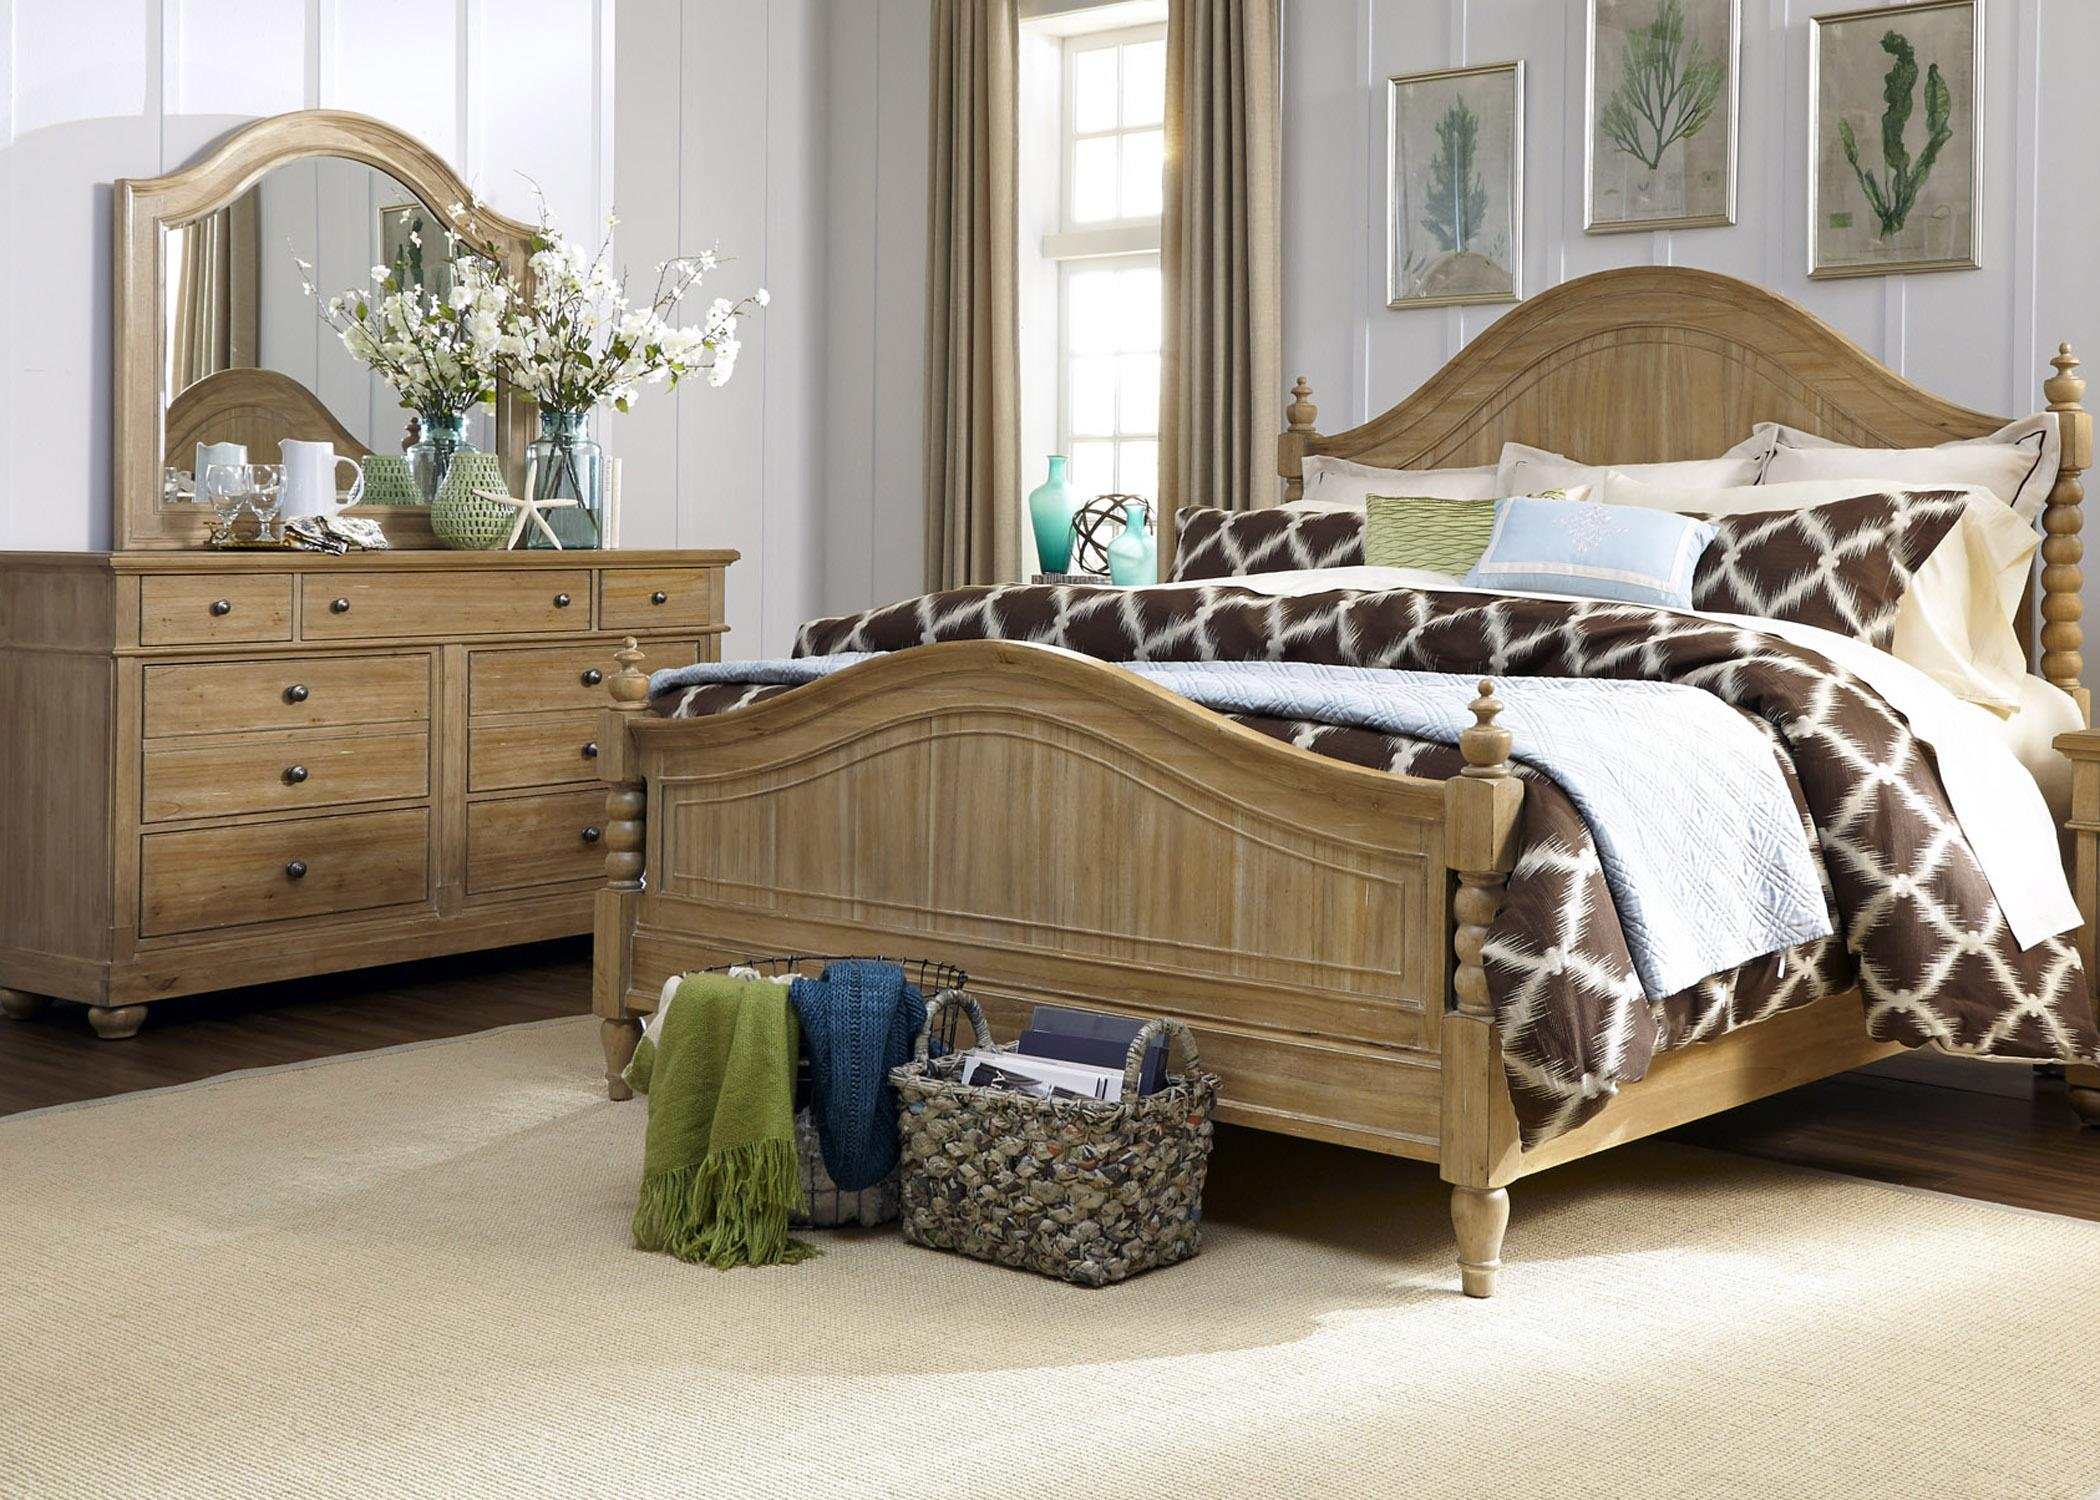 Liberty Furniture Harbor View King Bedroom Group - Item Number: 531-BR-KPSDM